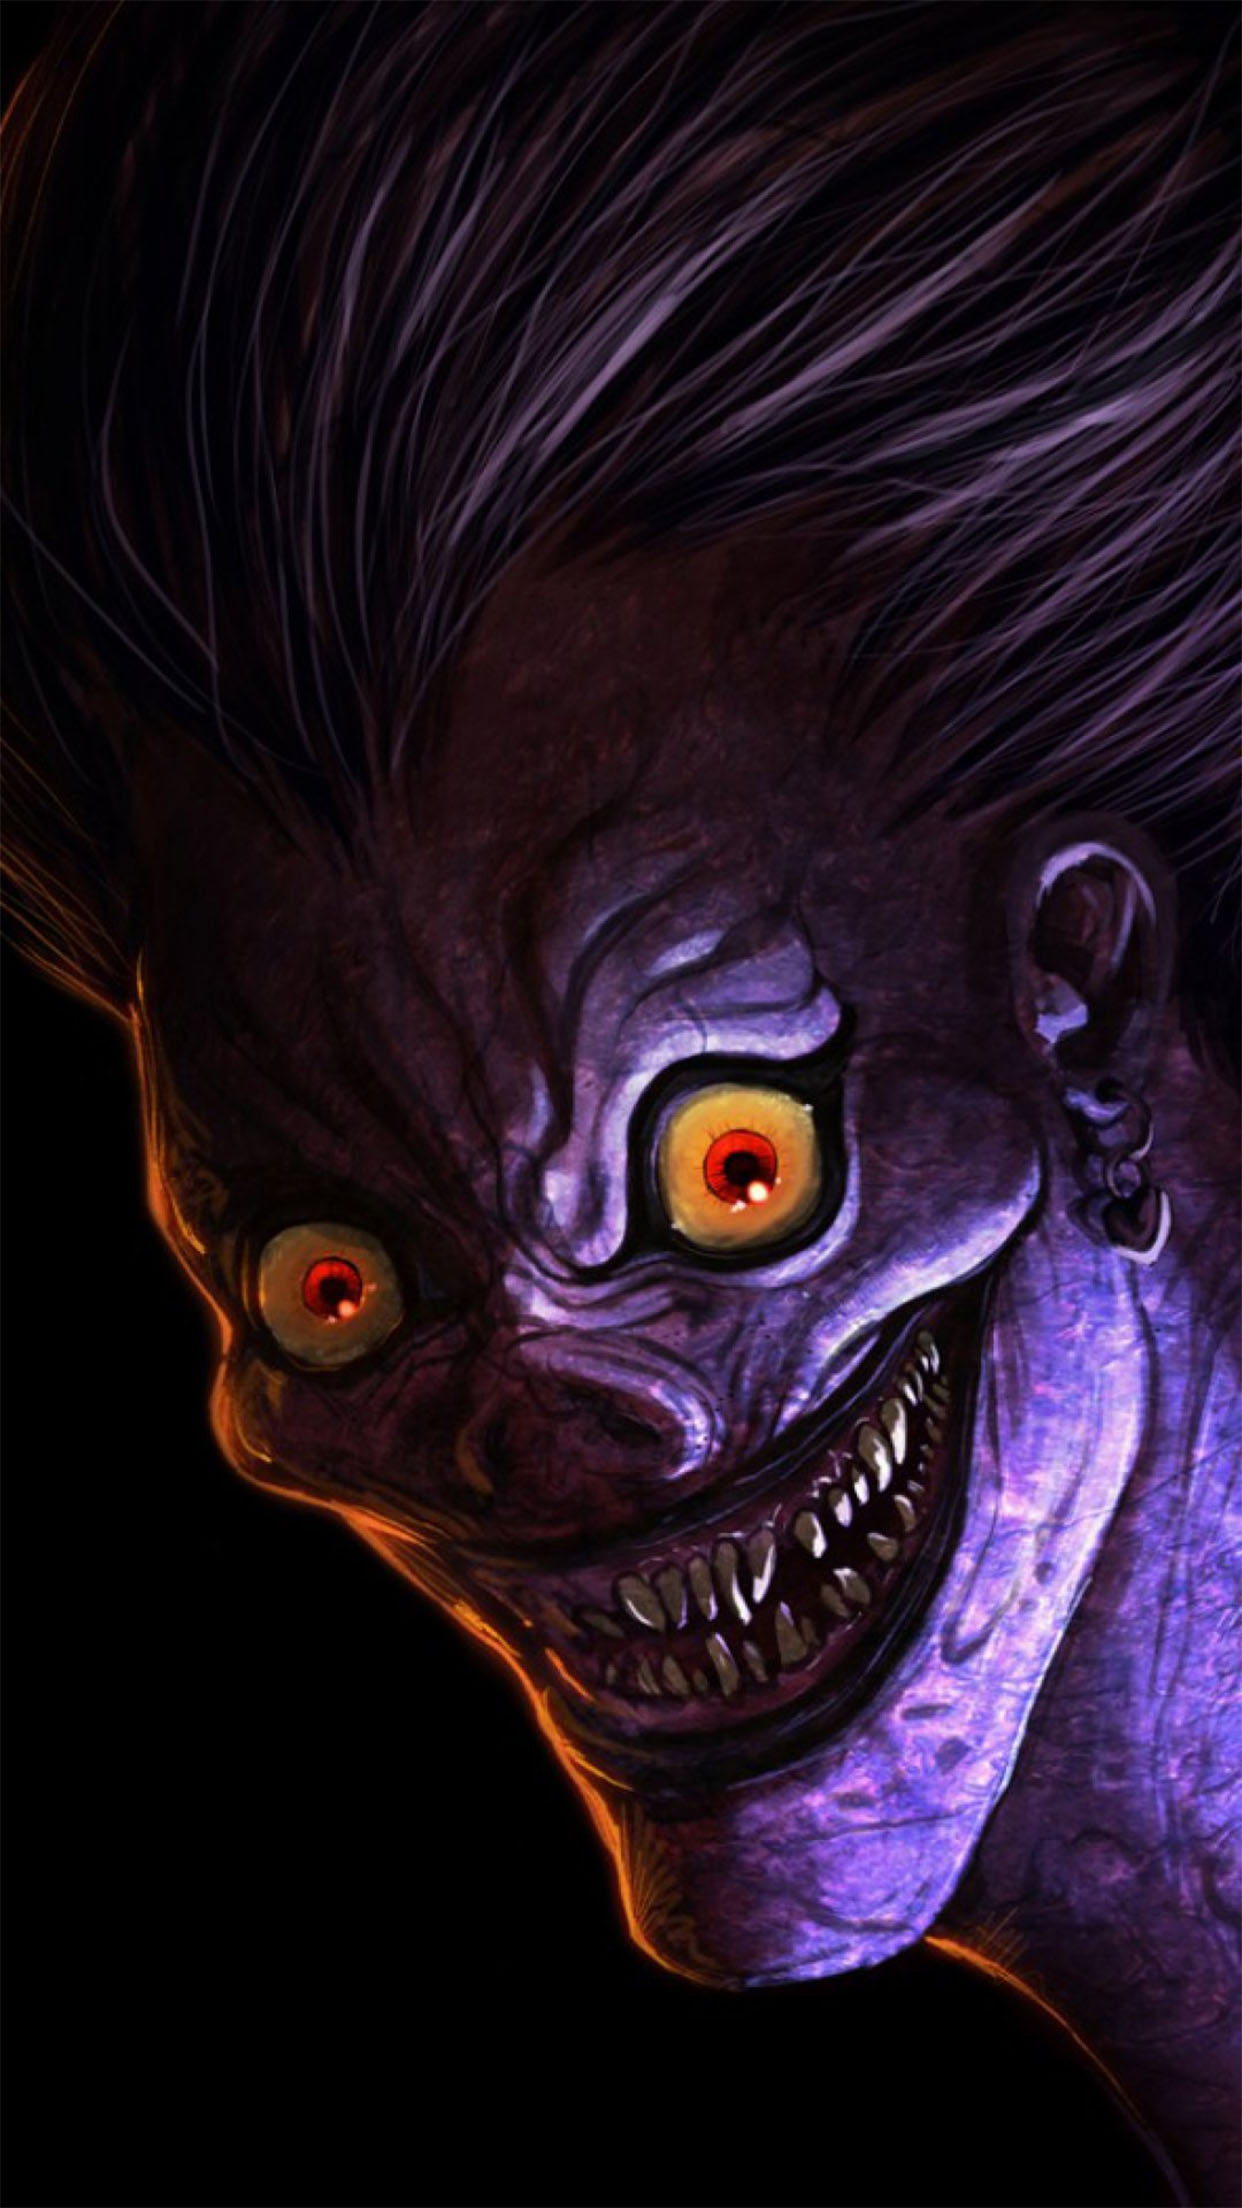 Ryuk Wallpaper For Iphone X 8 7 6 Free Download On